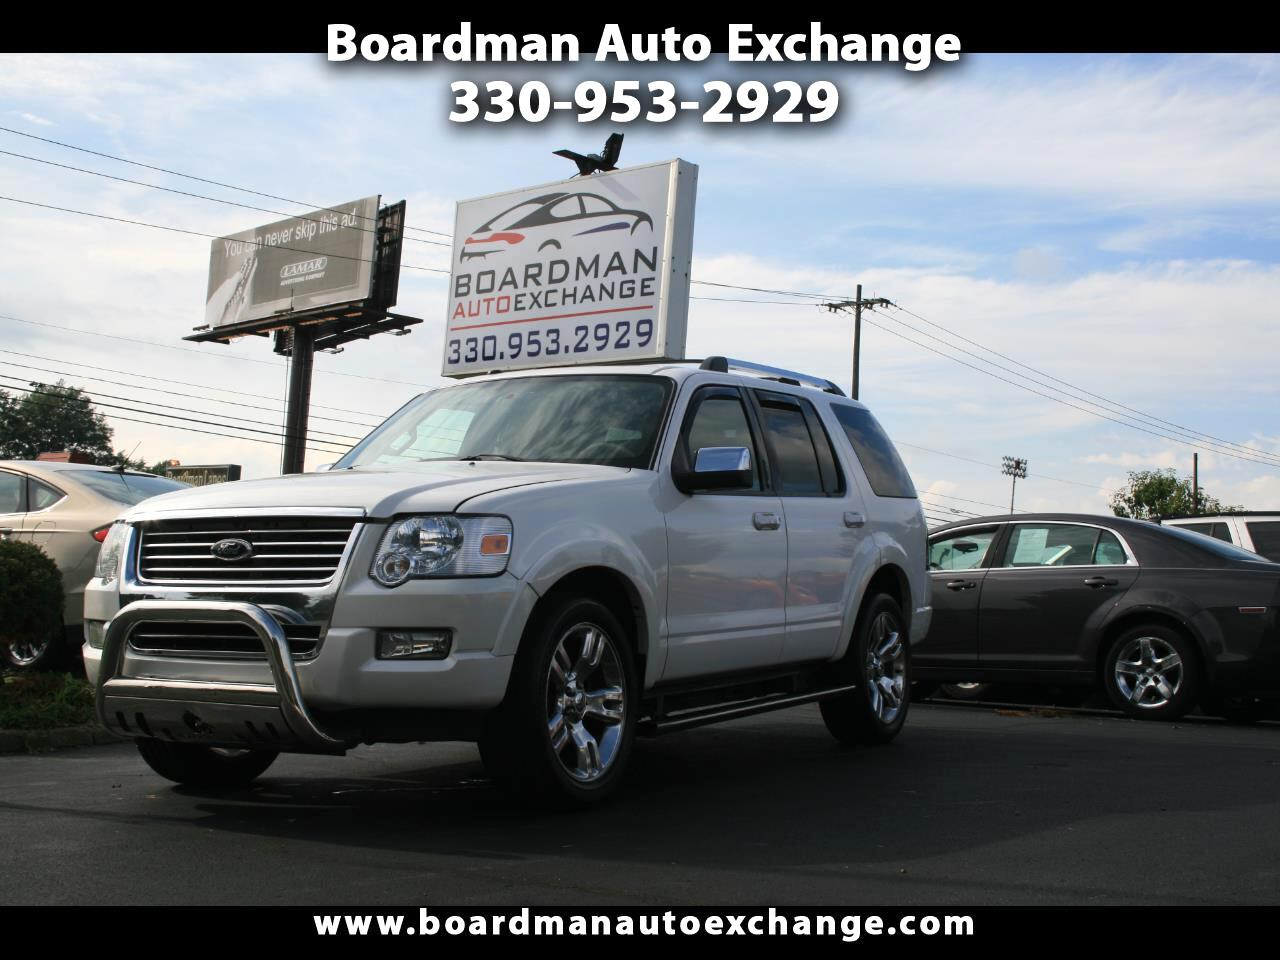 Ford Explorer AWD 4dr Limited 2010